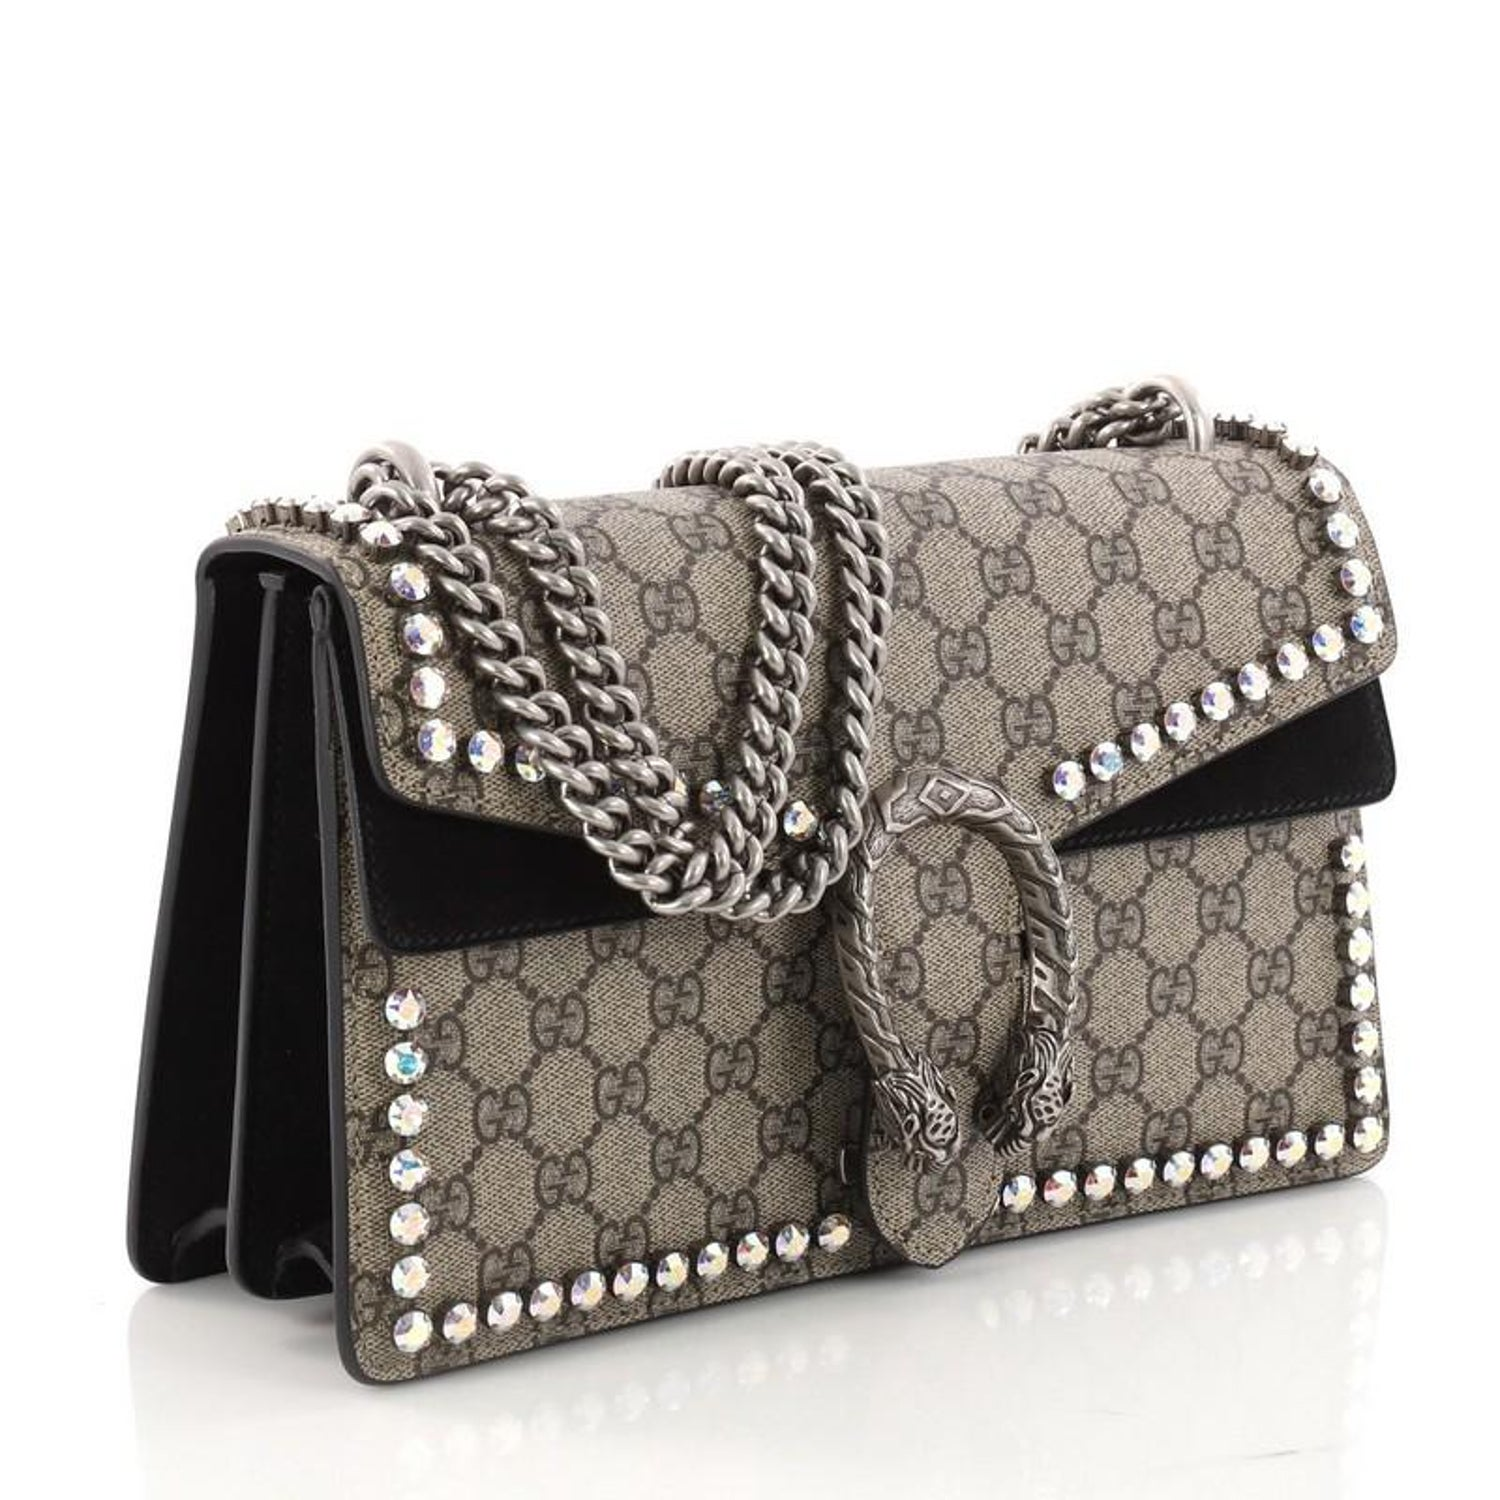 ec09753c1e0 Gucci Dionysus Handbag Crystal Embellished GG Coated Canvas Small at 1stdibs